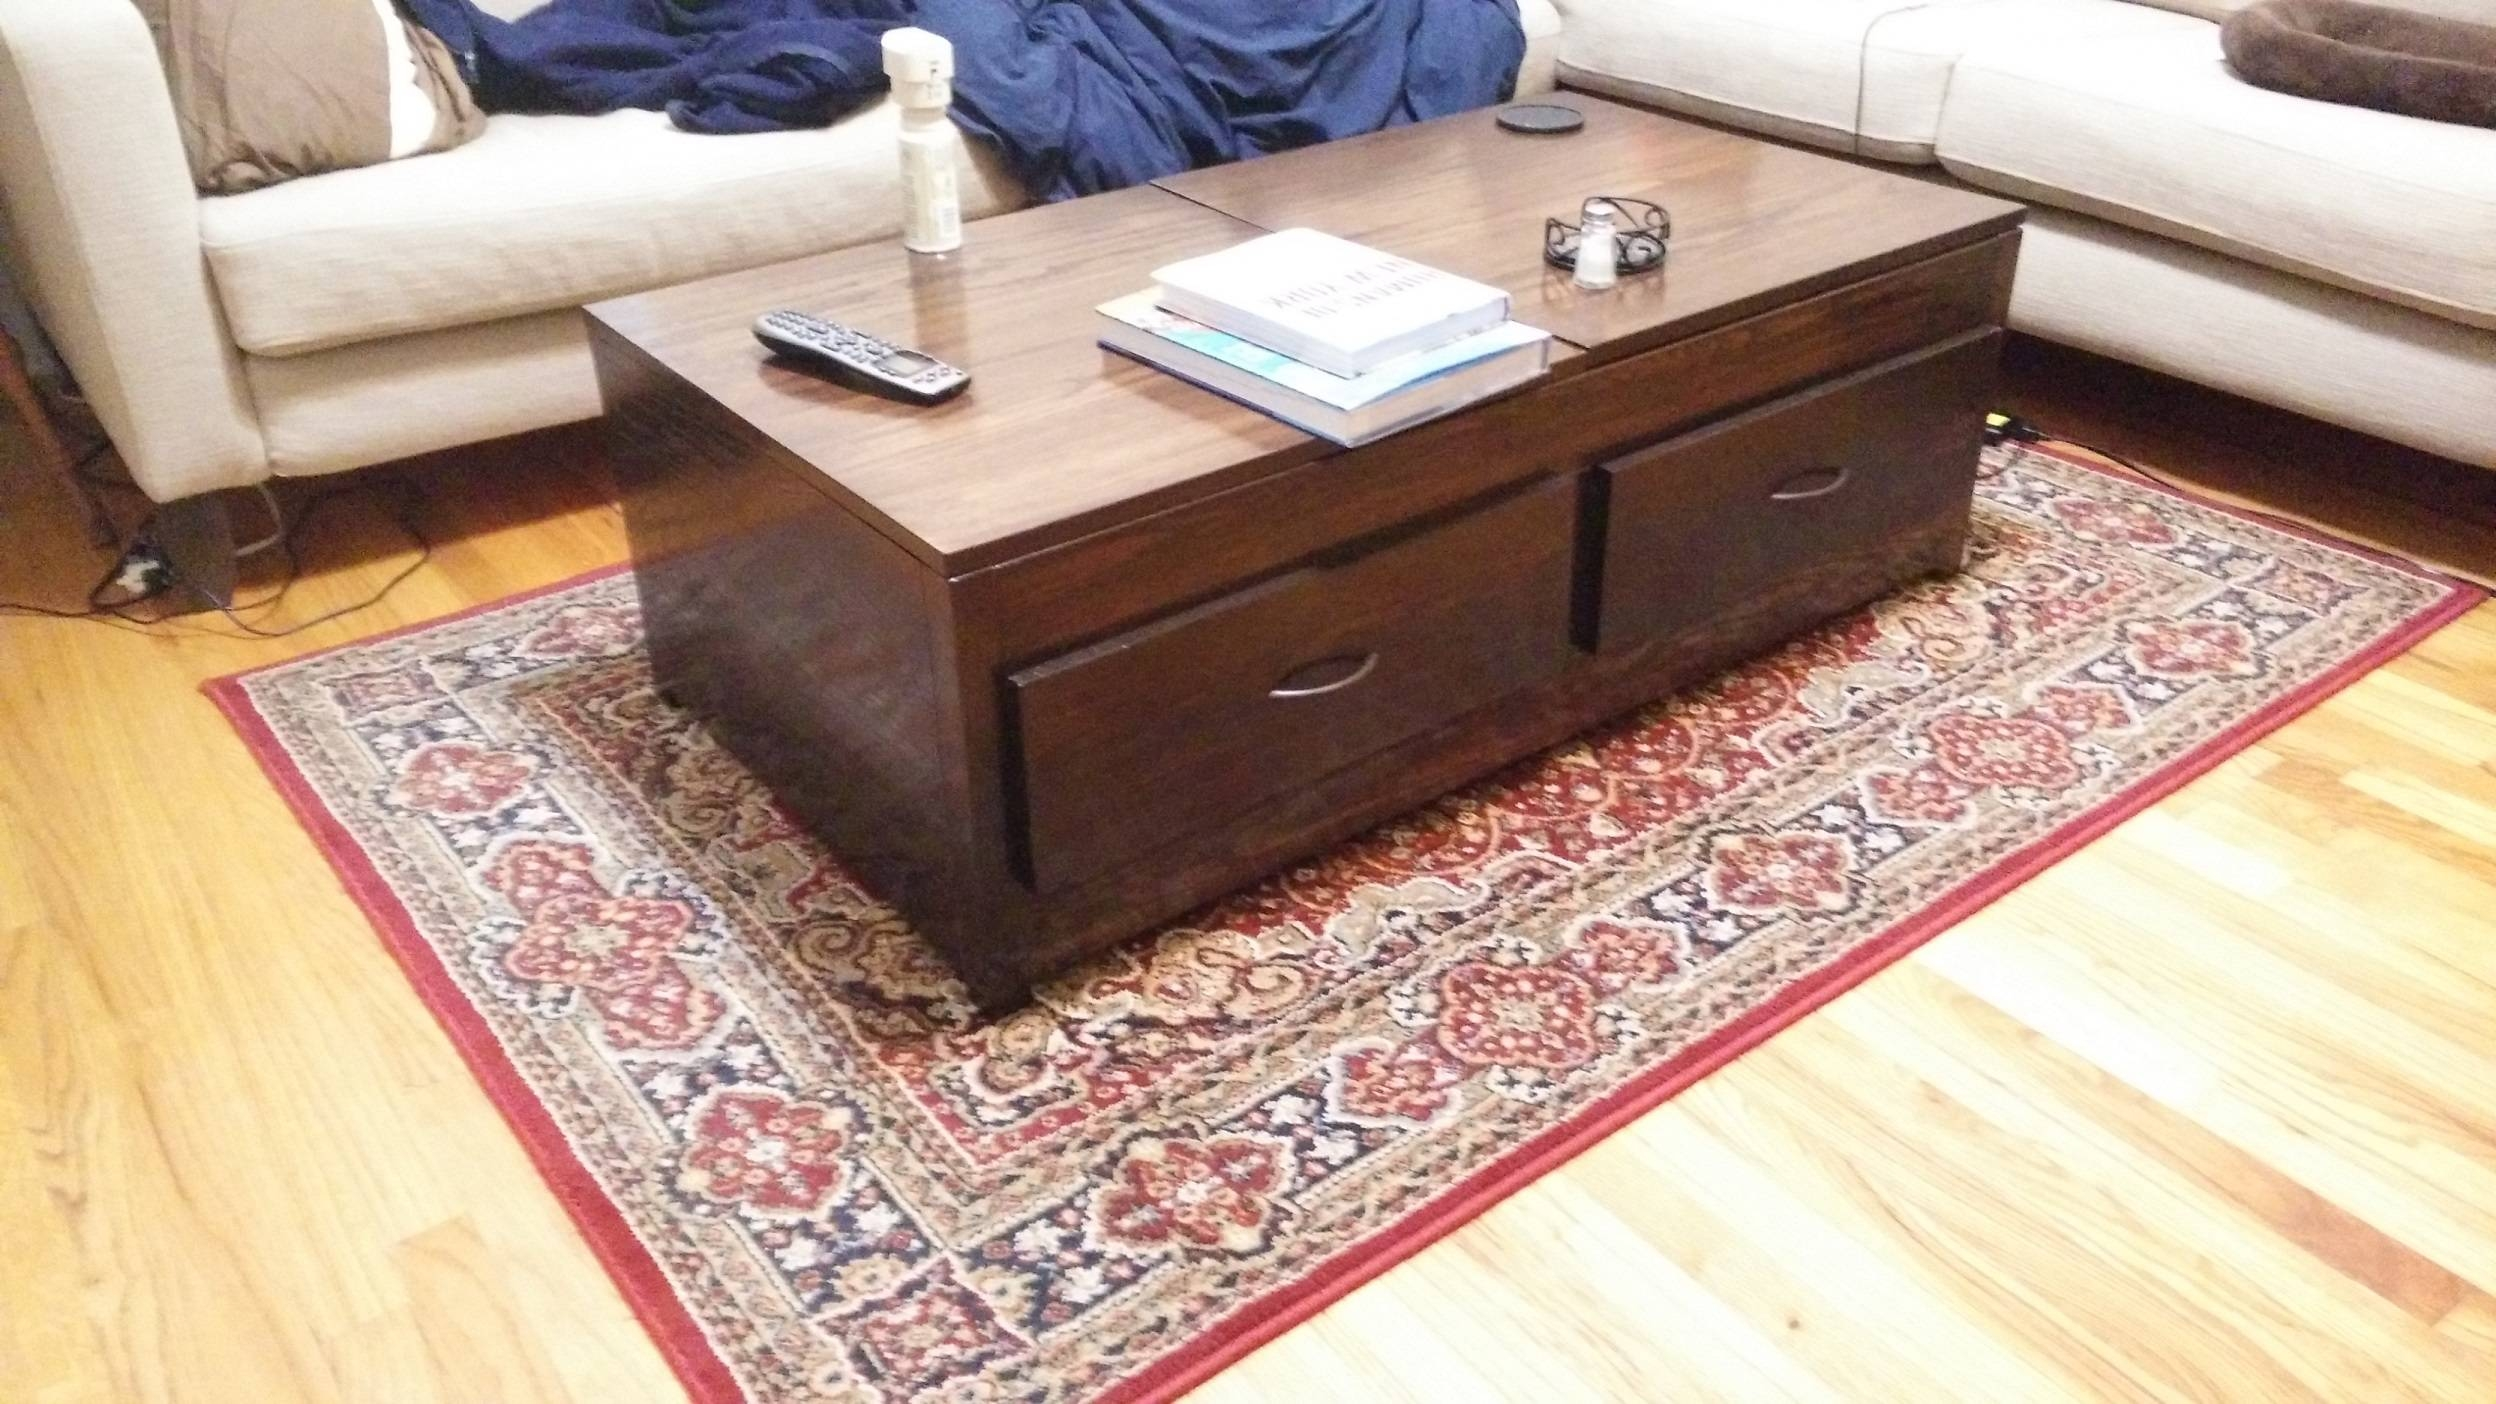 Ana White | Lift Top Coffee Table - Diy Projects within Raisable Coffee Tables (Image 5 of 30)